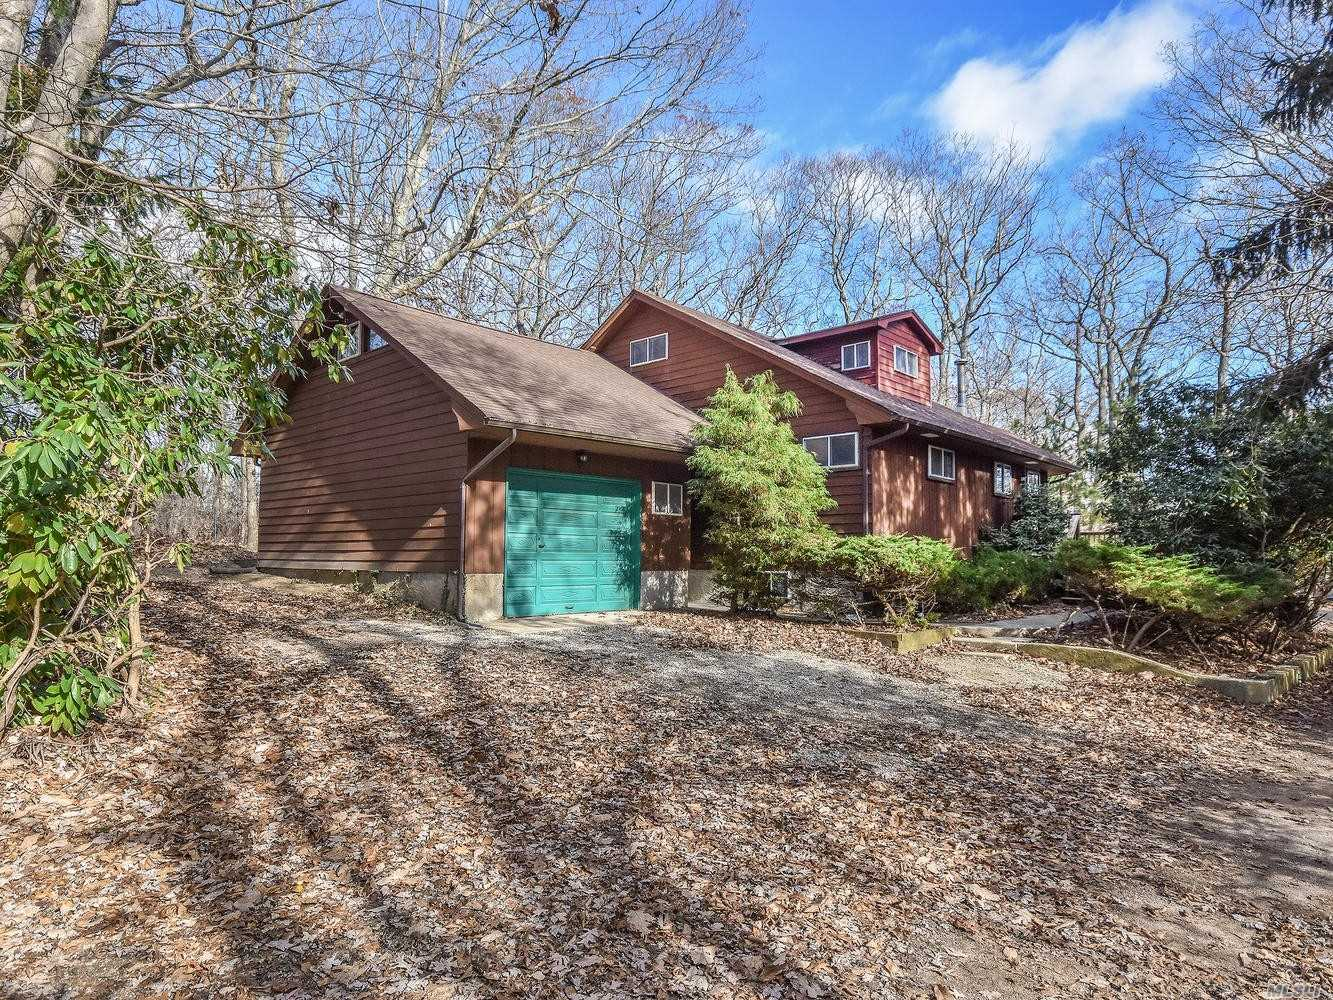 Photo of home for sale at 340 North Dr, Mattituck NY